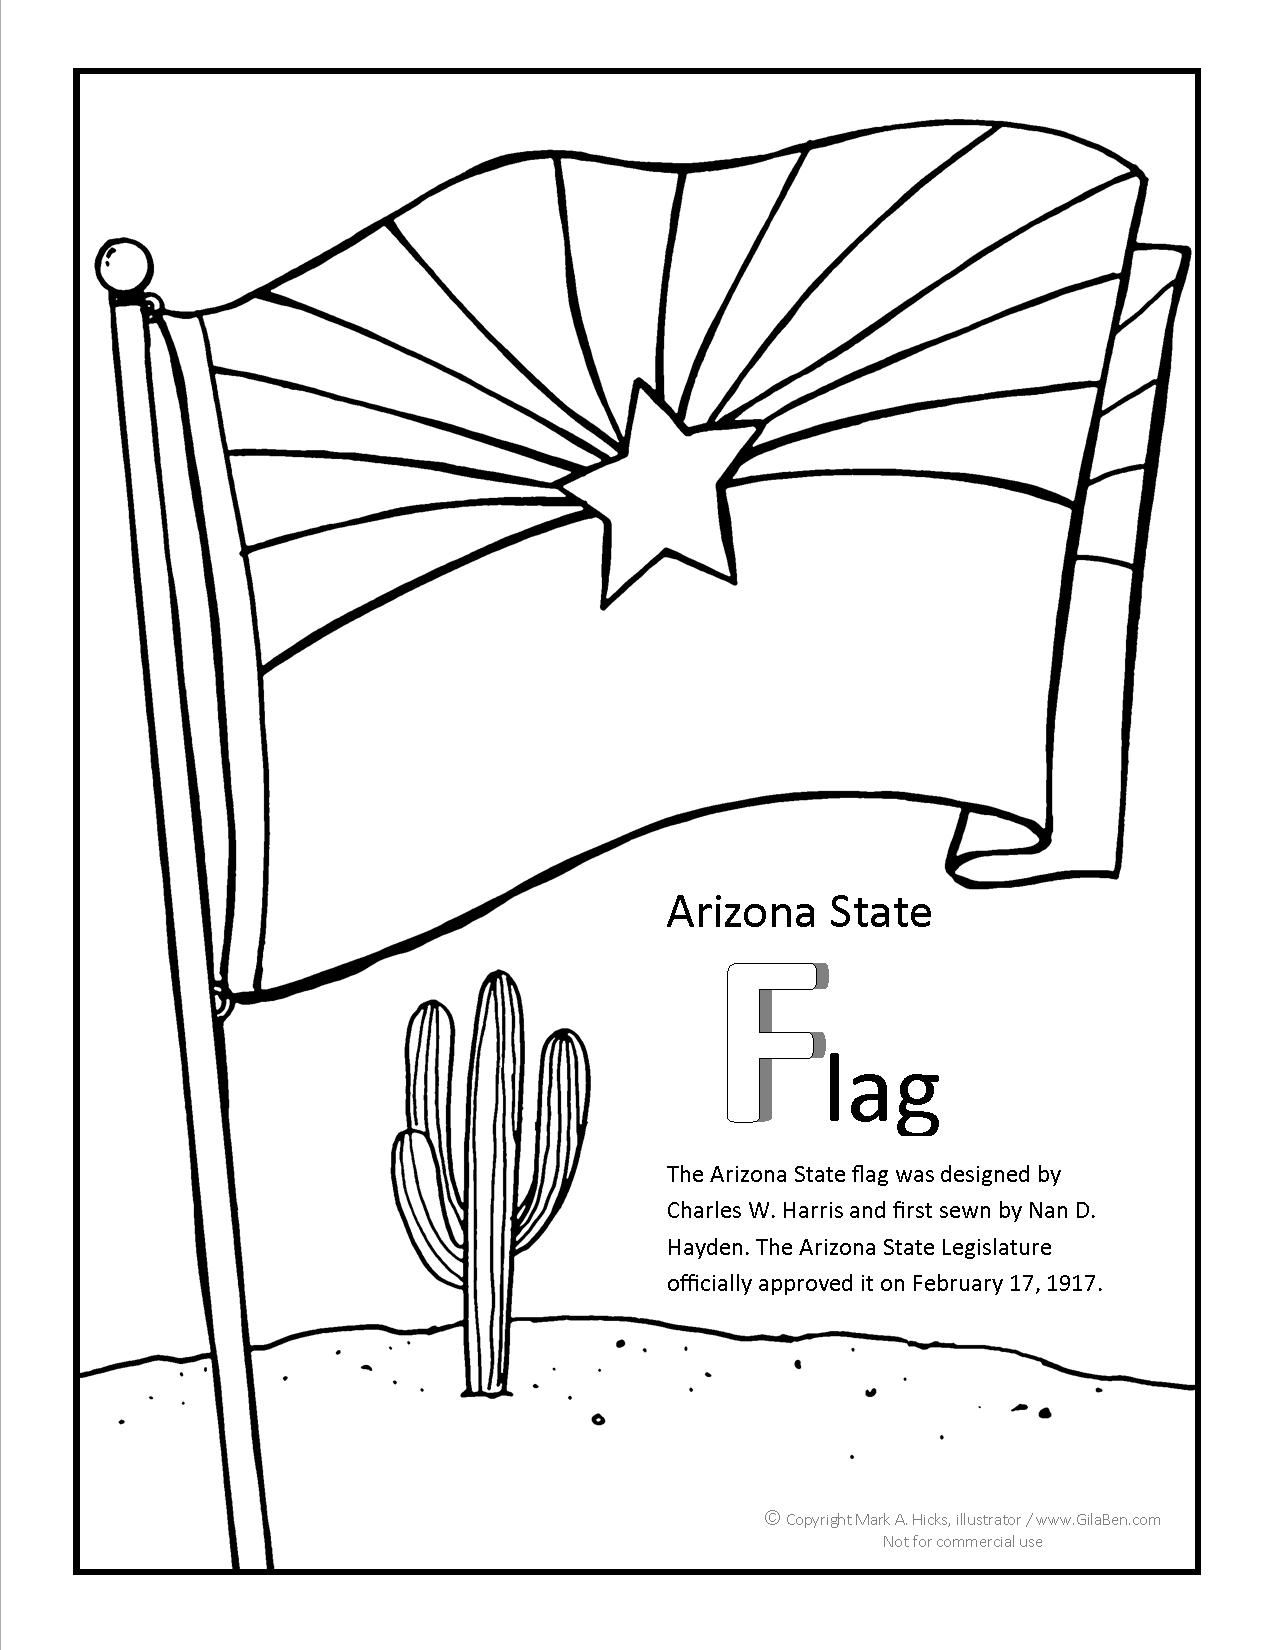 Arizona Flag Coloring Page Flag Coloring Pages Arizona Flag Coloring Pages